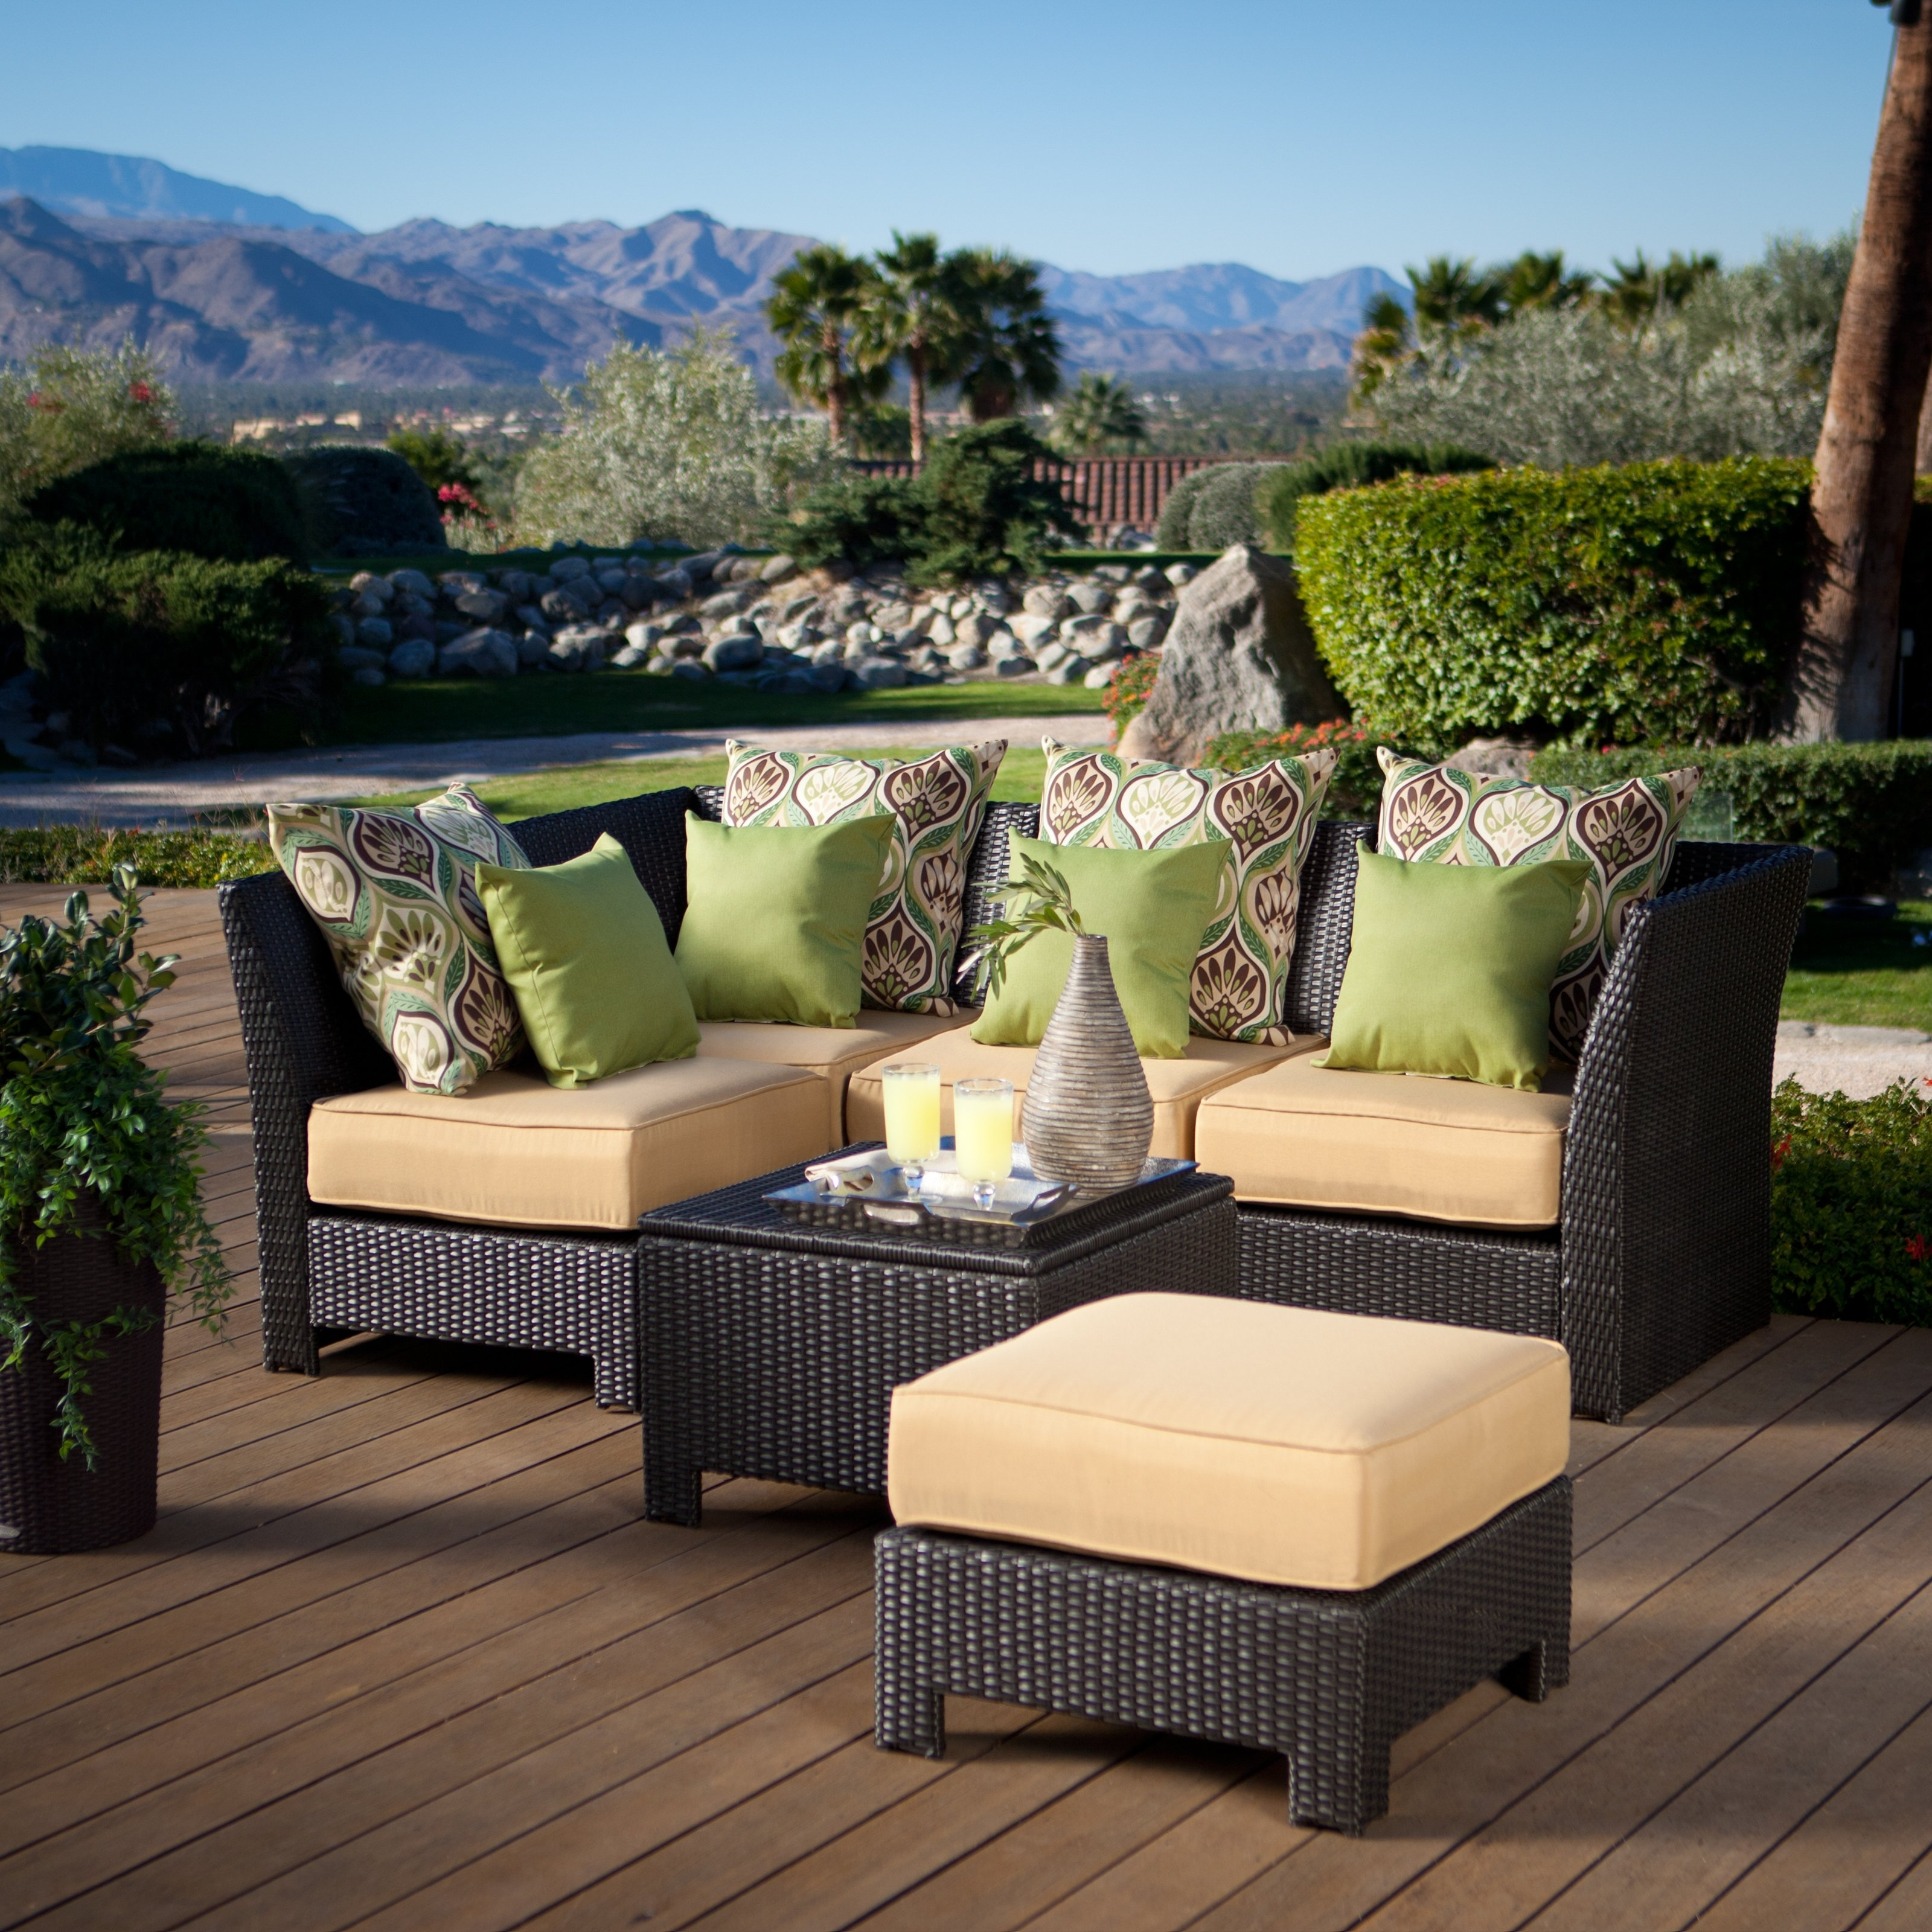 Recent Patio Conversation Sets Under $400 With Regard To Patio Conversation Sets Wicker » Design And Ideas (Gallery 10 of 20)